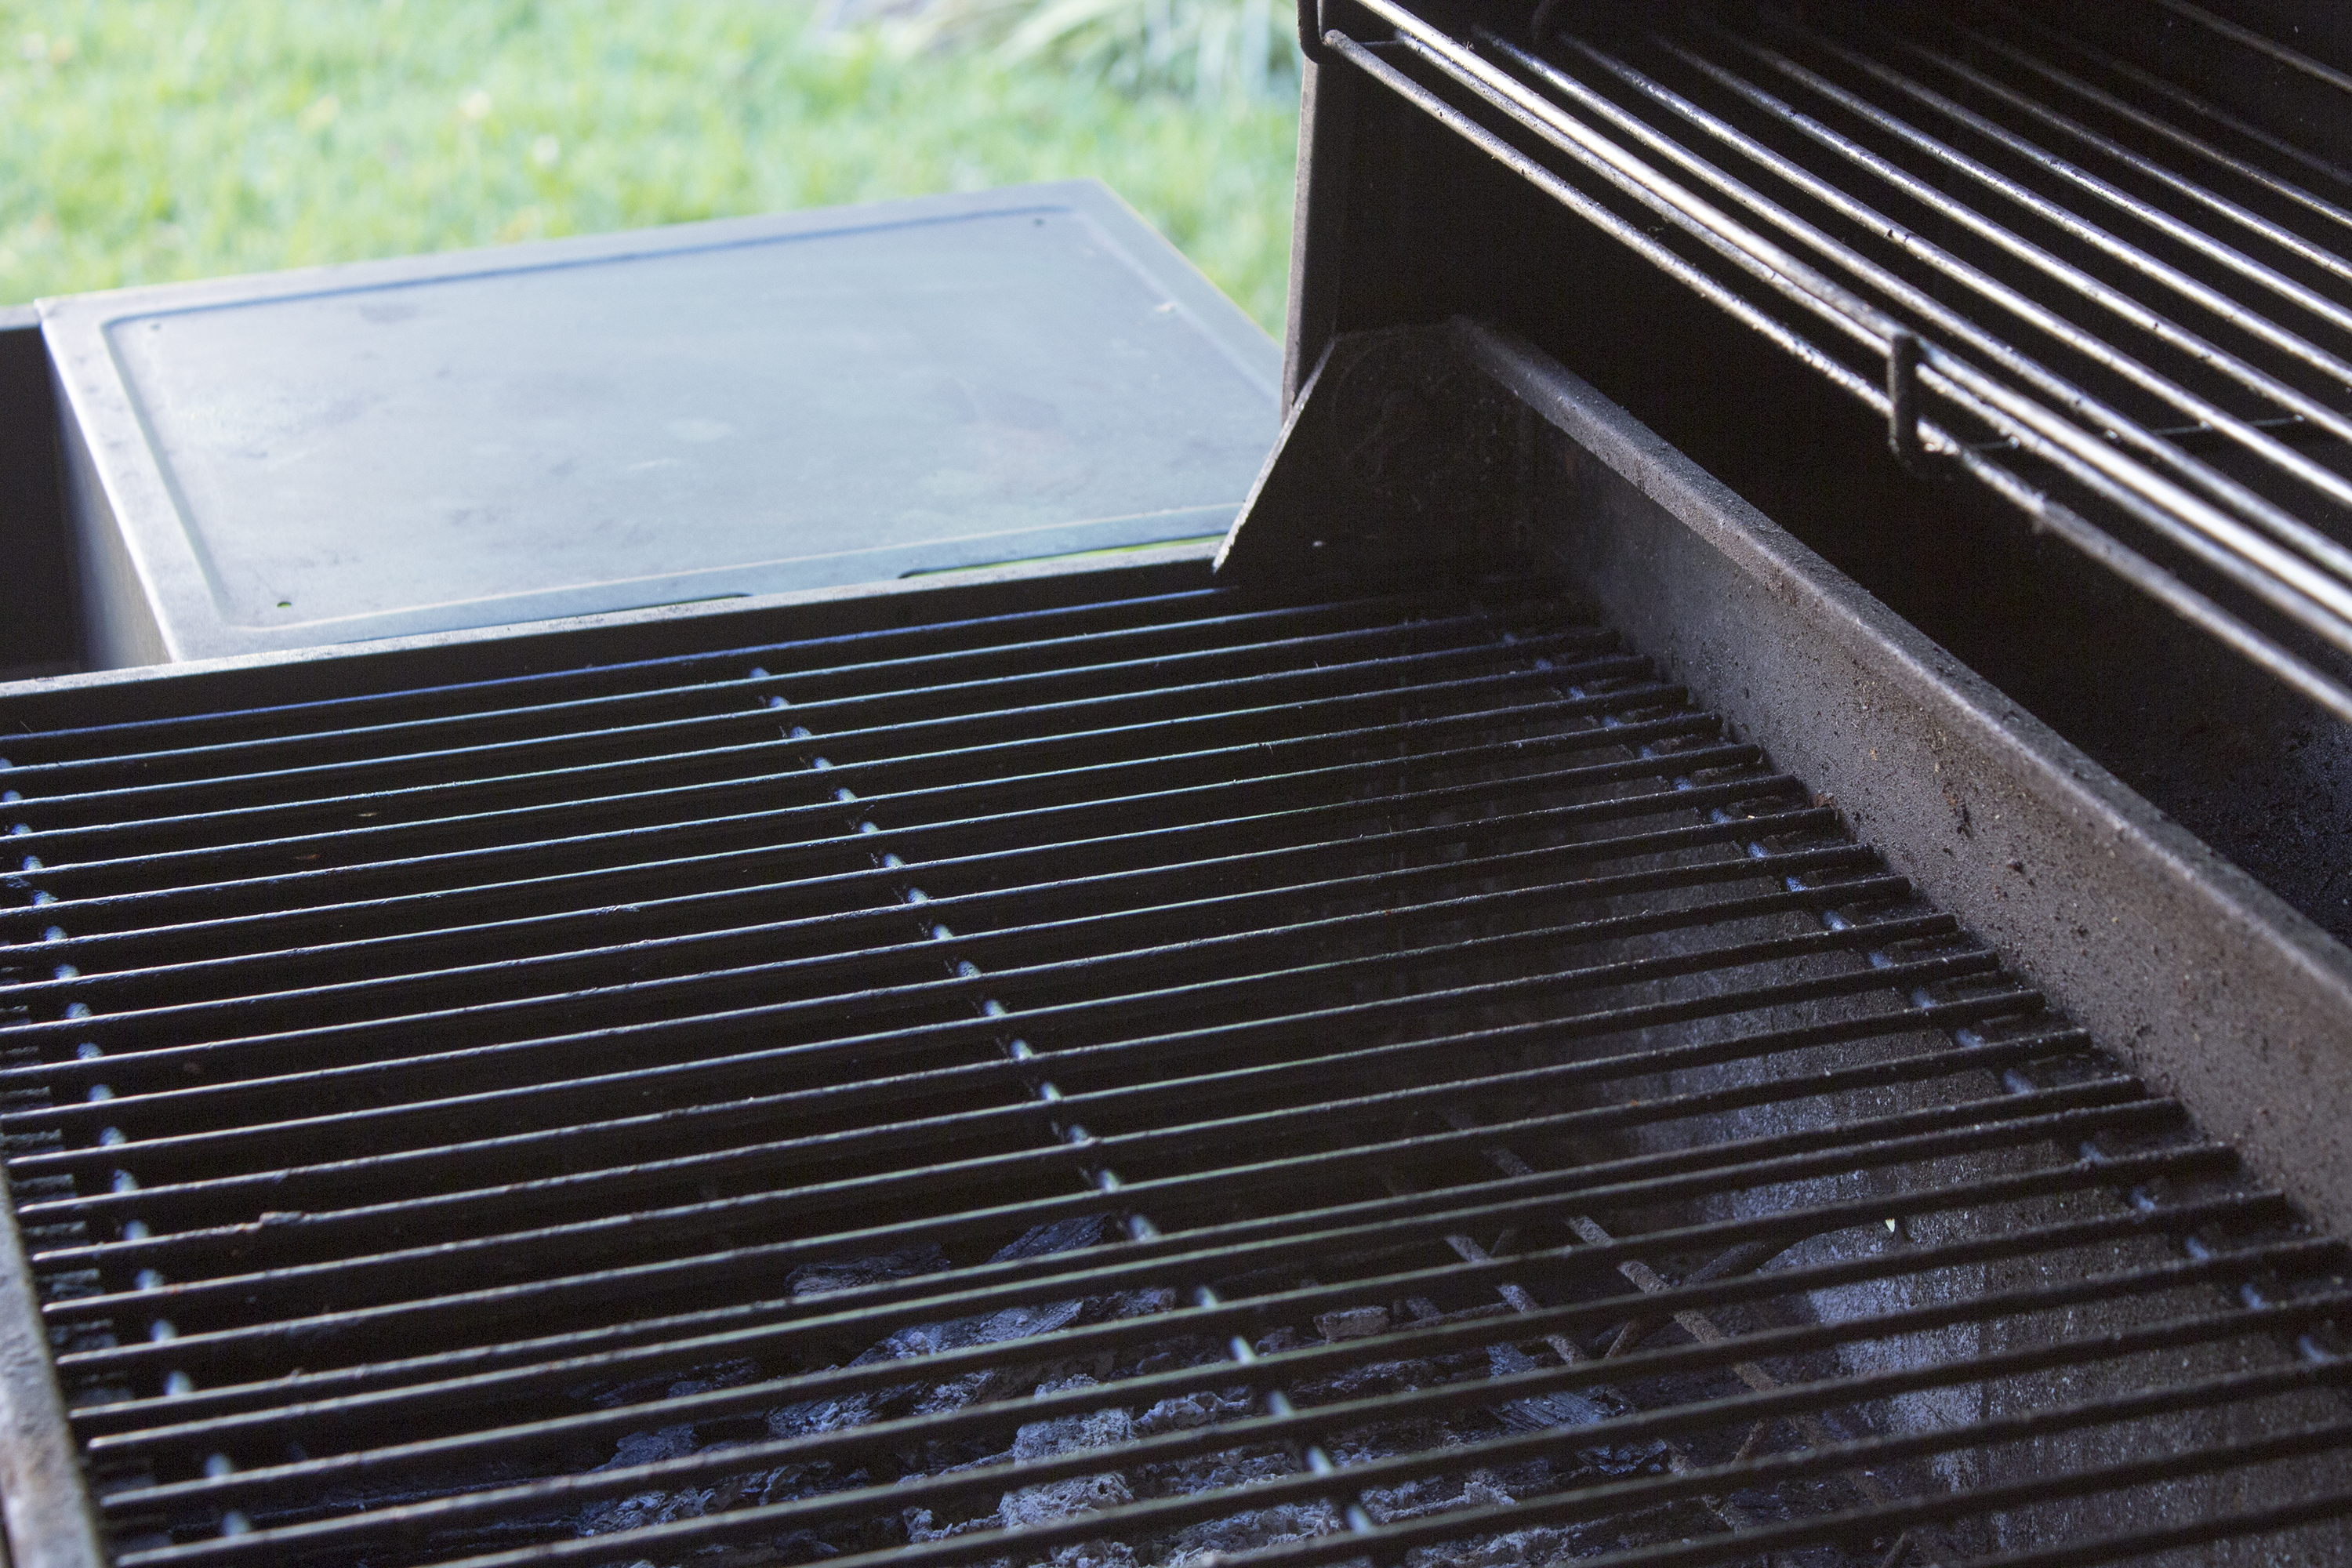 How to season cast iron grill grates home guides sf gate dailygadgetfo Images